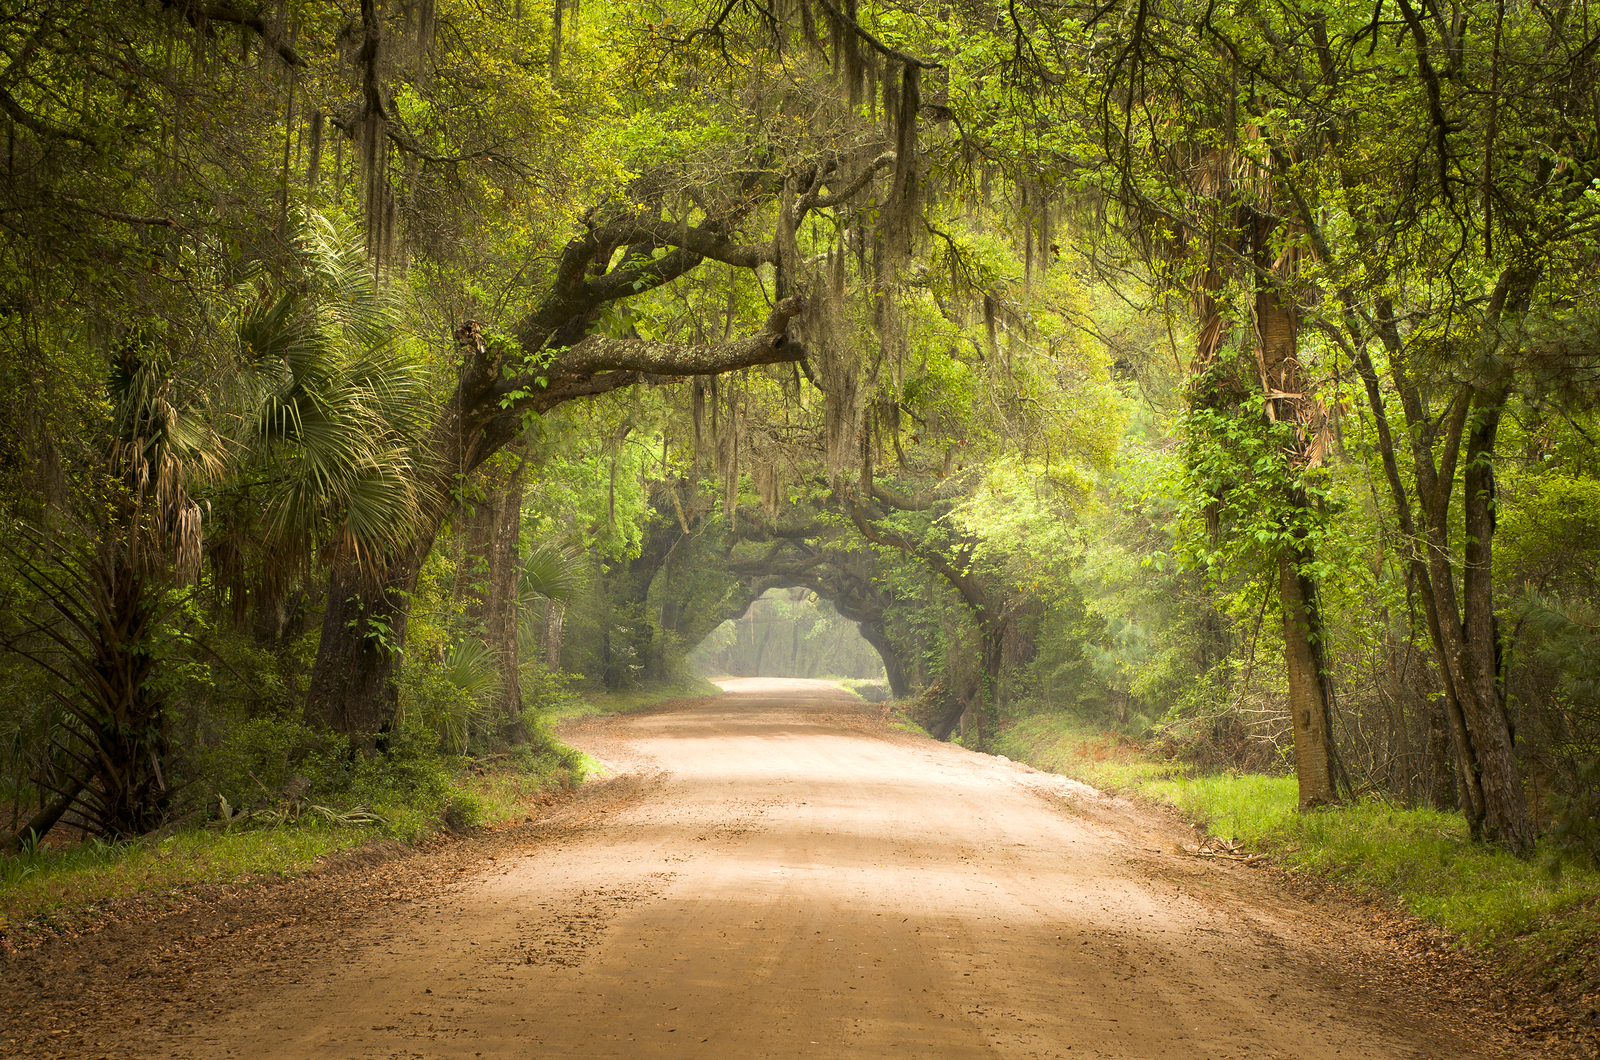 Country Dirt Road Backgrounds Country dirt r 1600x1060